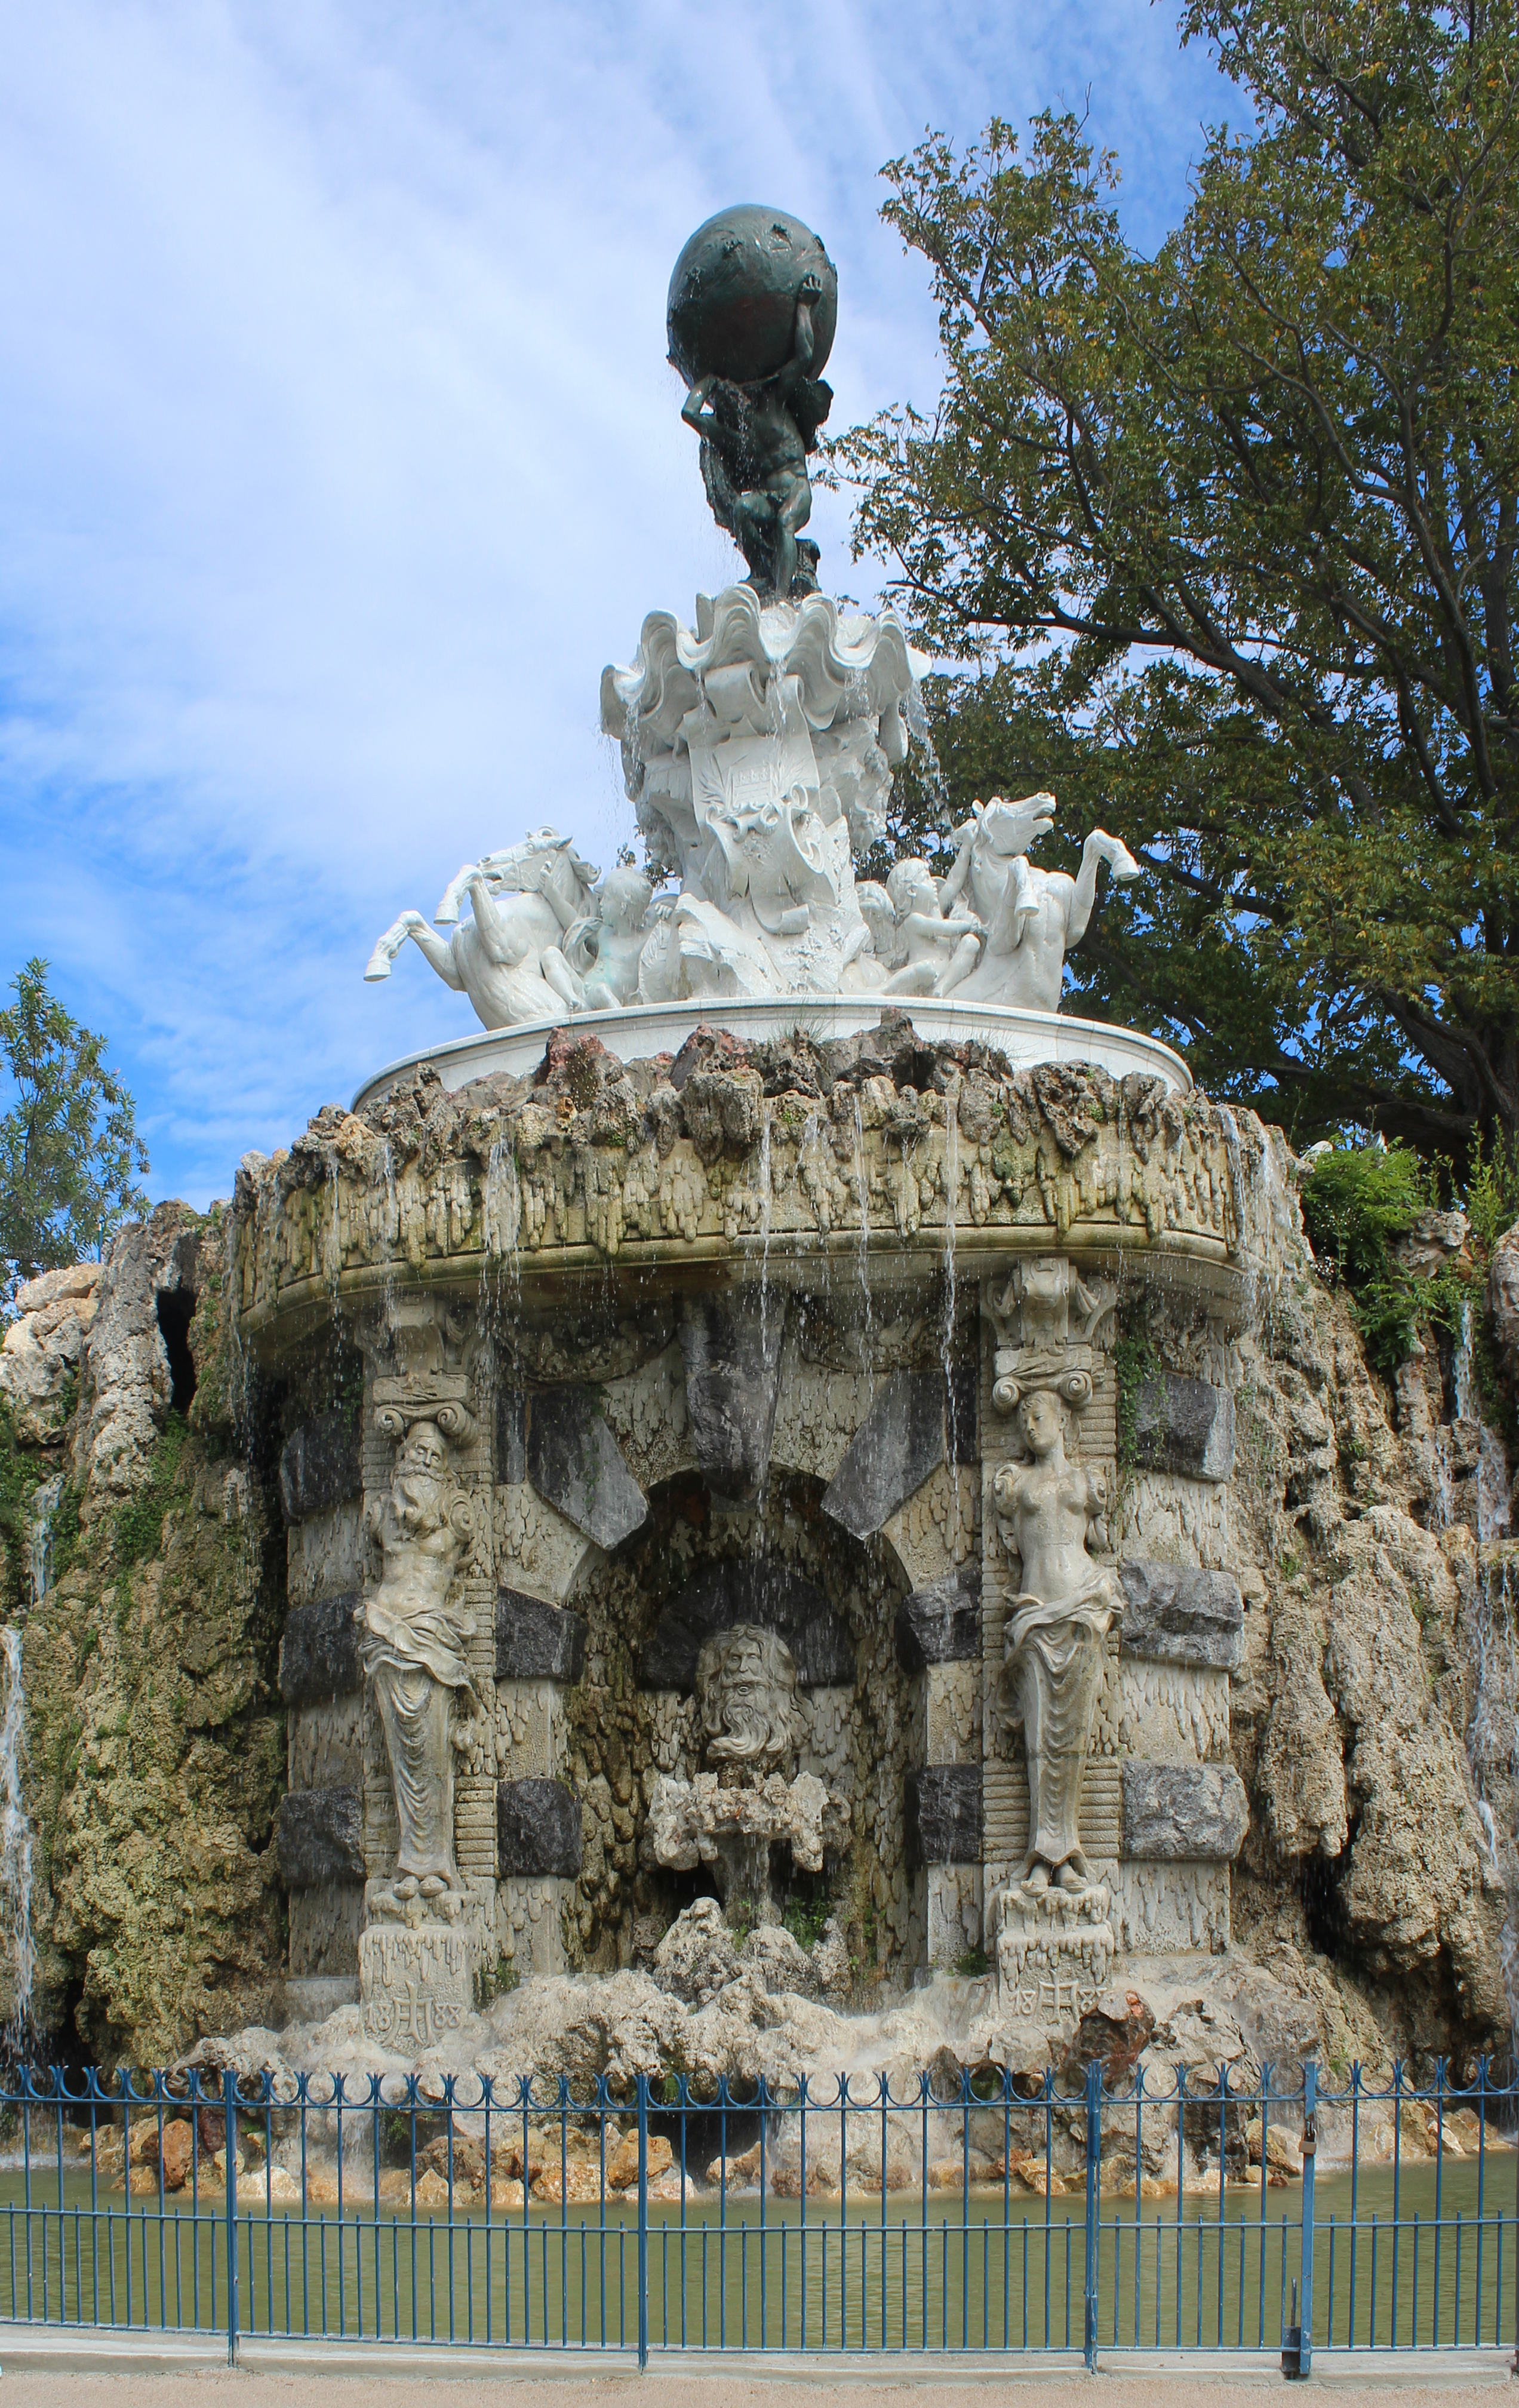 In And Out Beziers file:fountain of titan, béziers - wikimedia commons